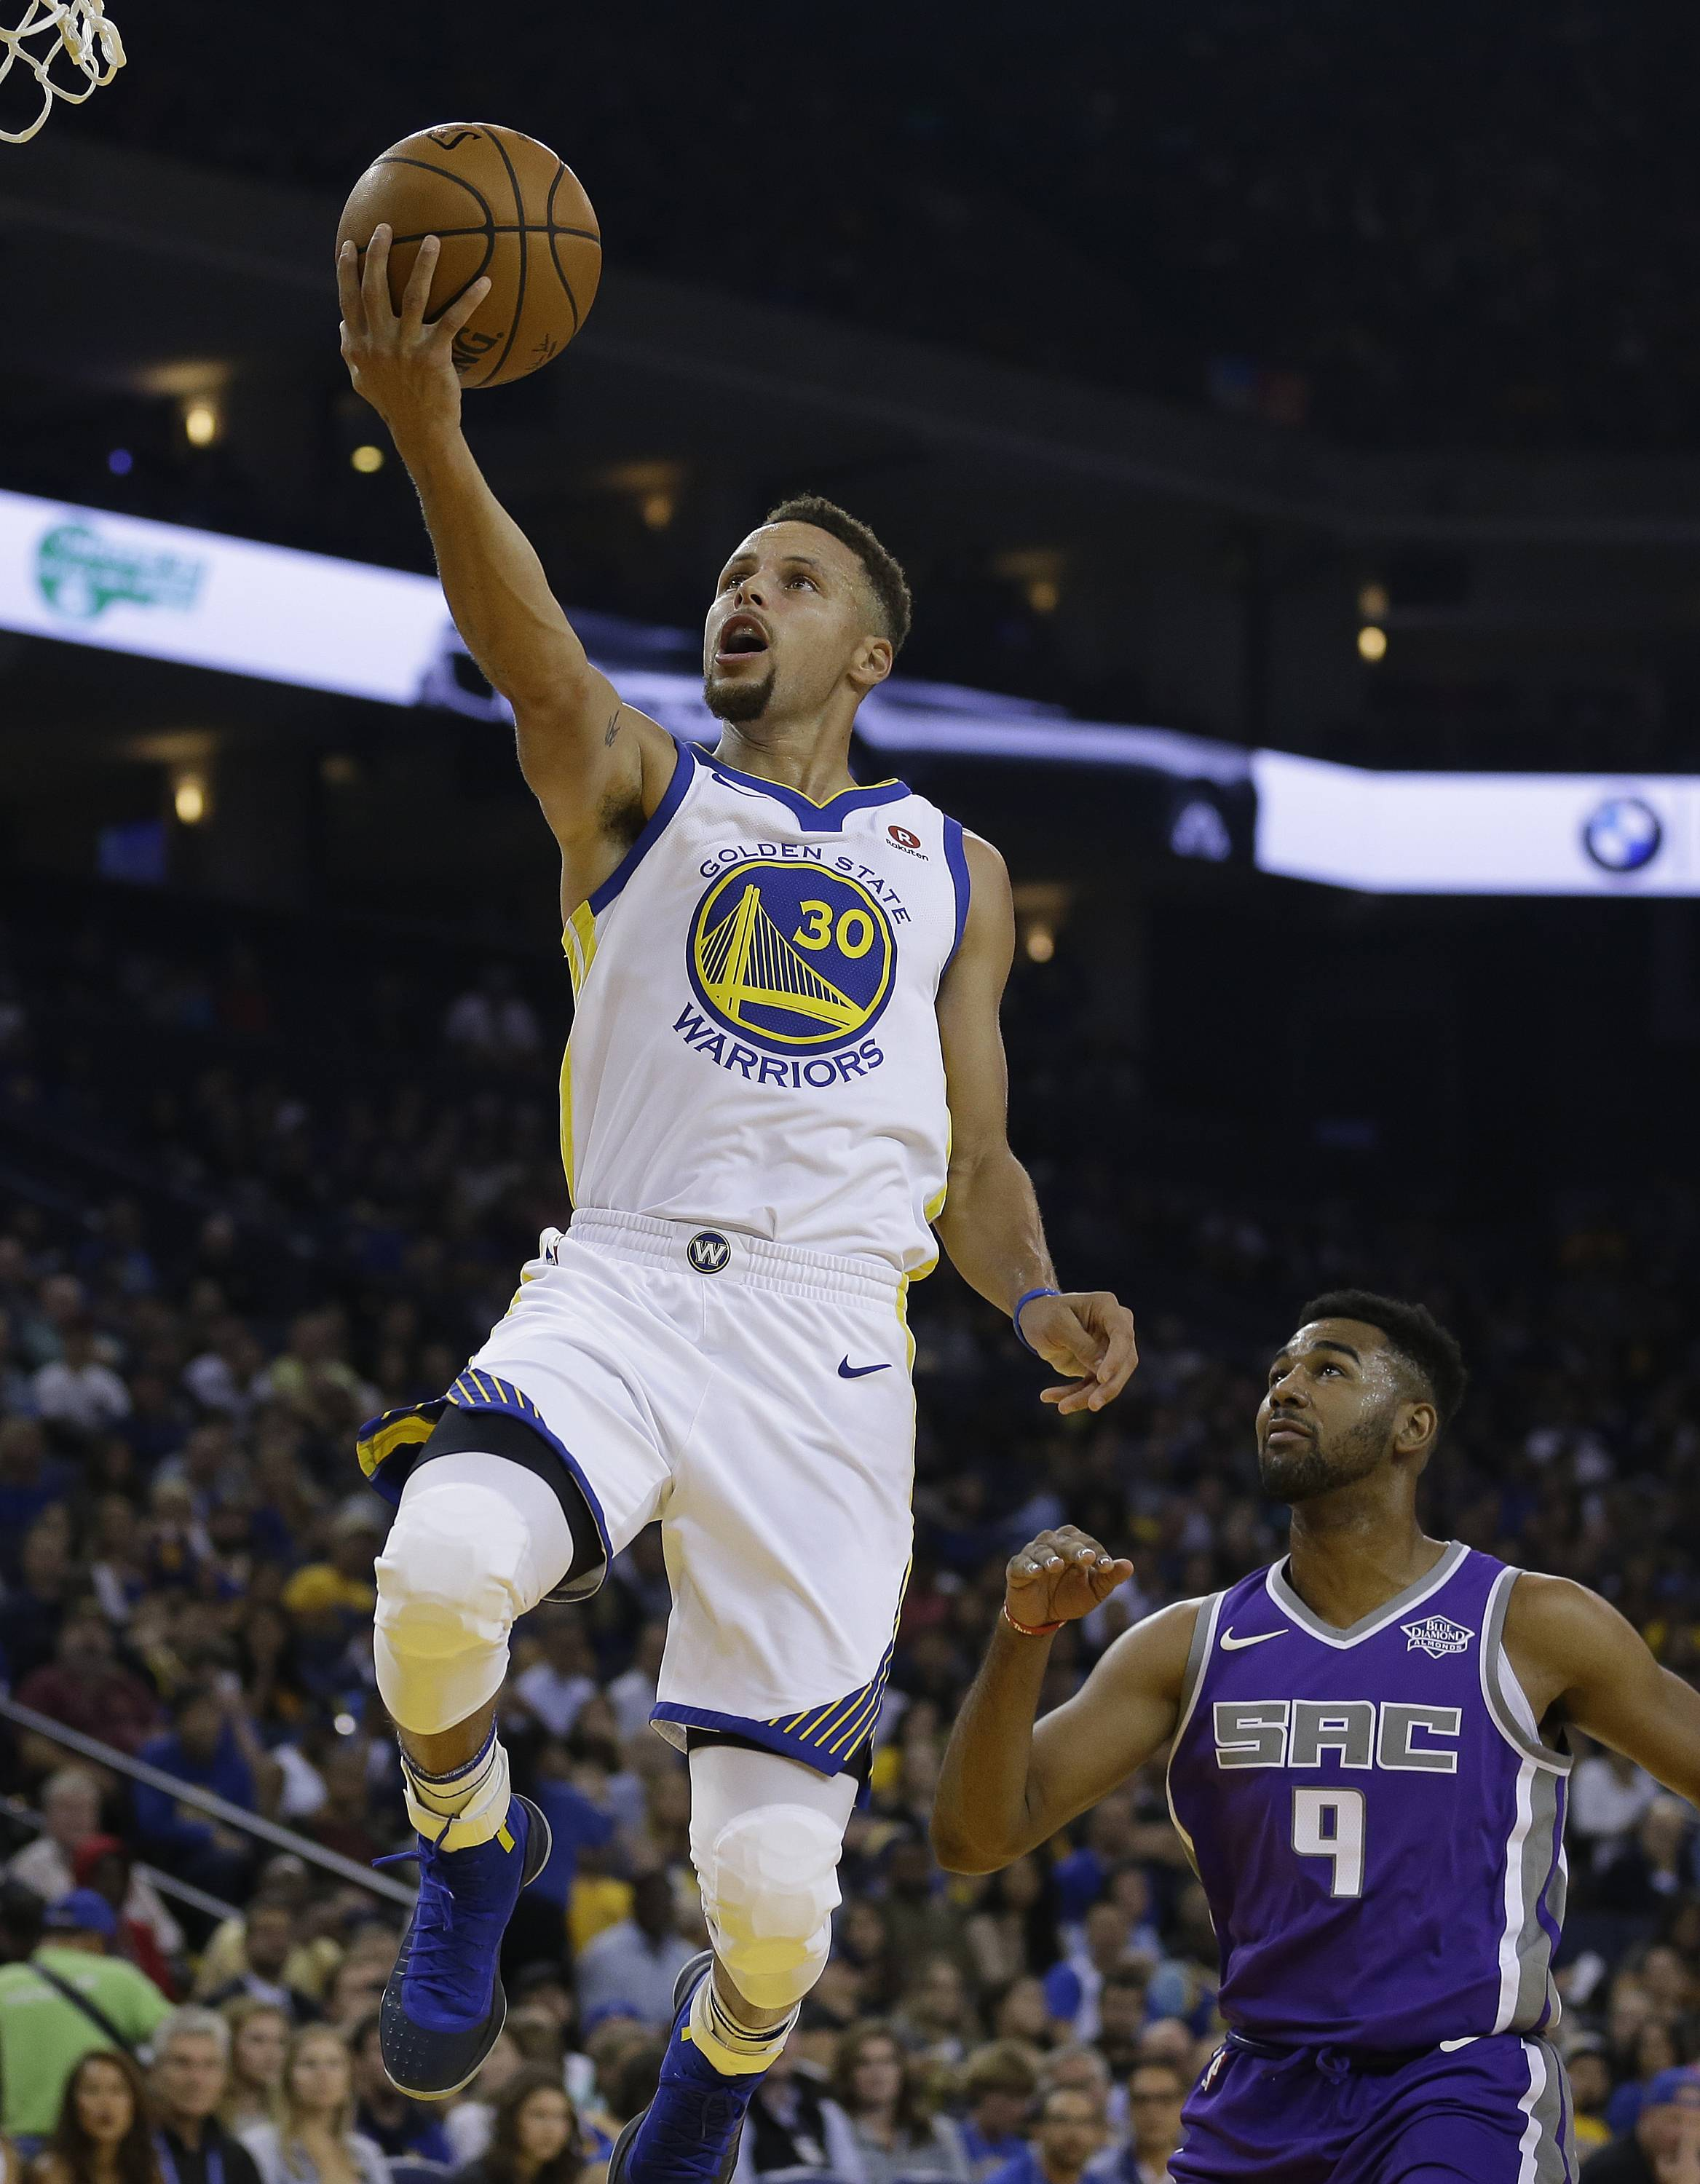 Golden State Warriors guard Stephen Curry, left, goes to the basket as Sacramento Kings guard Matt Jones, right, watches during the first half of a preseason NBA basketball game Friday, Oct. 13, 2017, in Oakland, Calif.